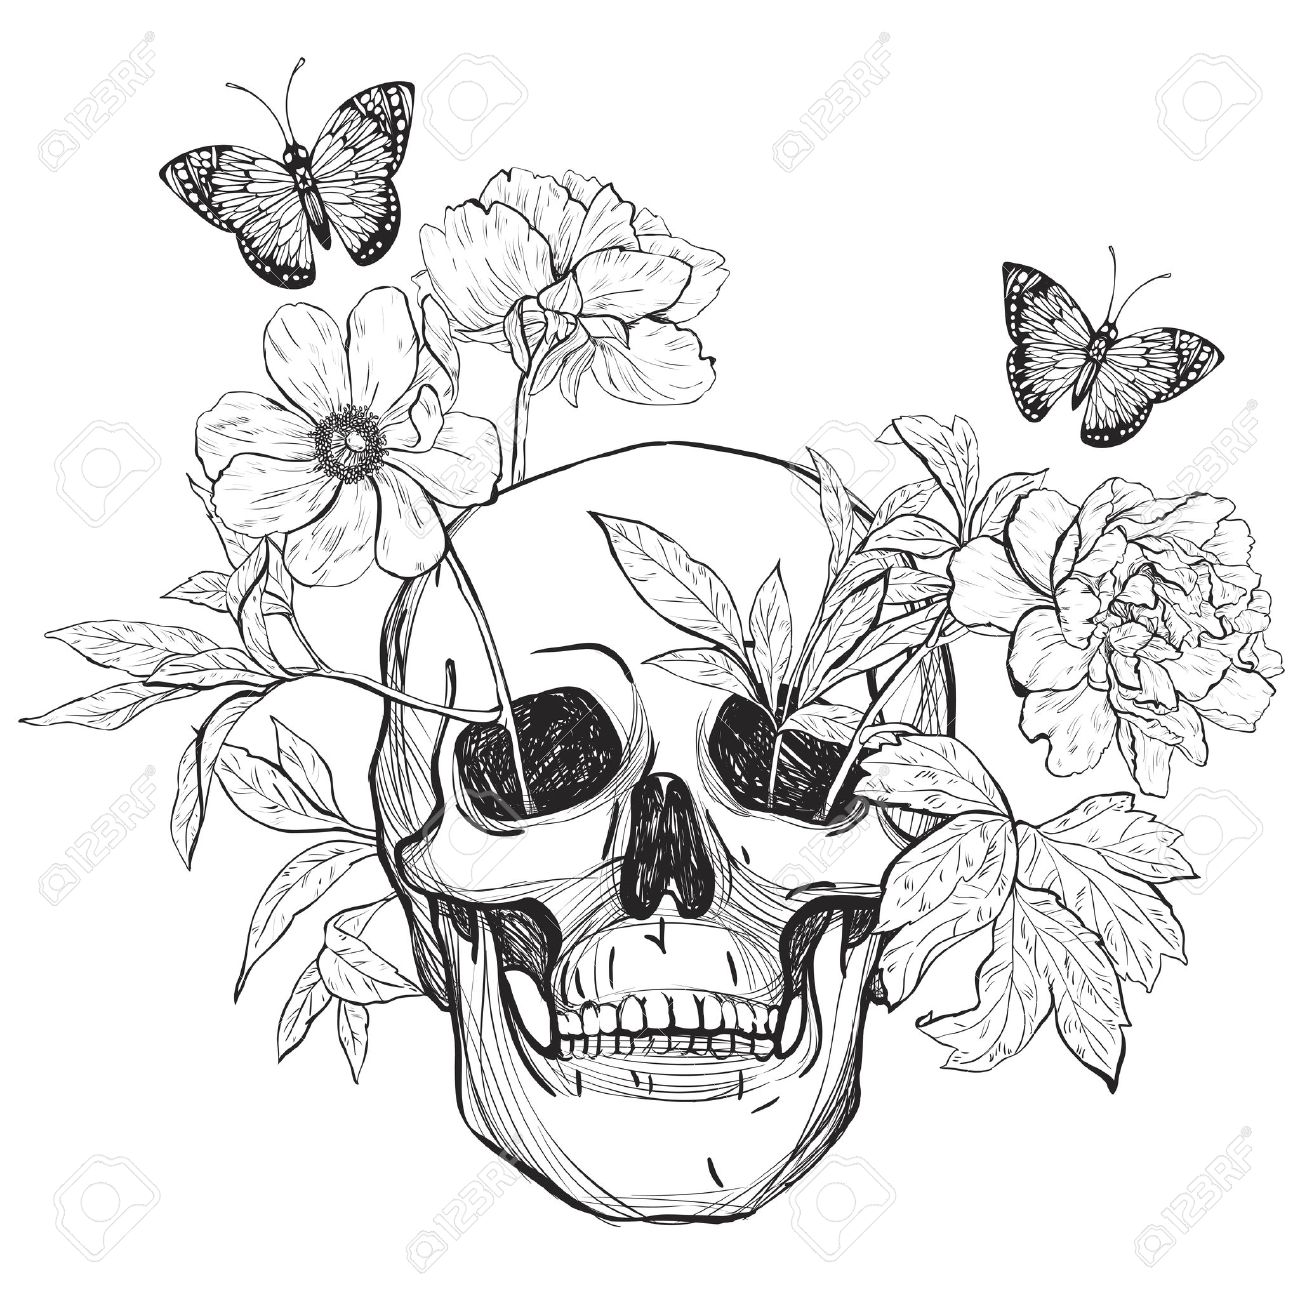 Skull, flowers and butterfly. Tattoo art, coloring books. vintage illustration Isolated on white background. - 52783011